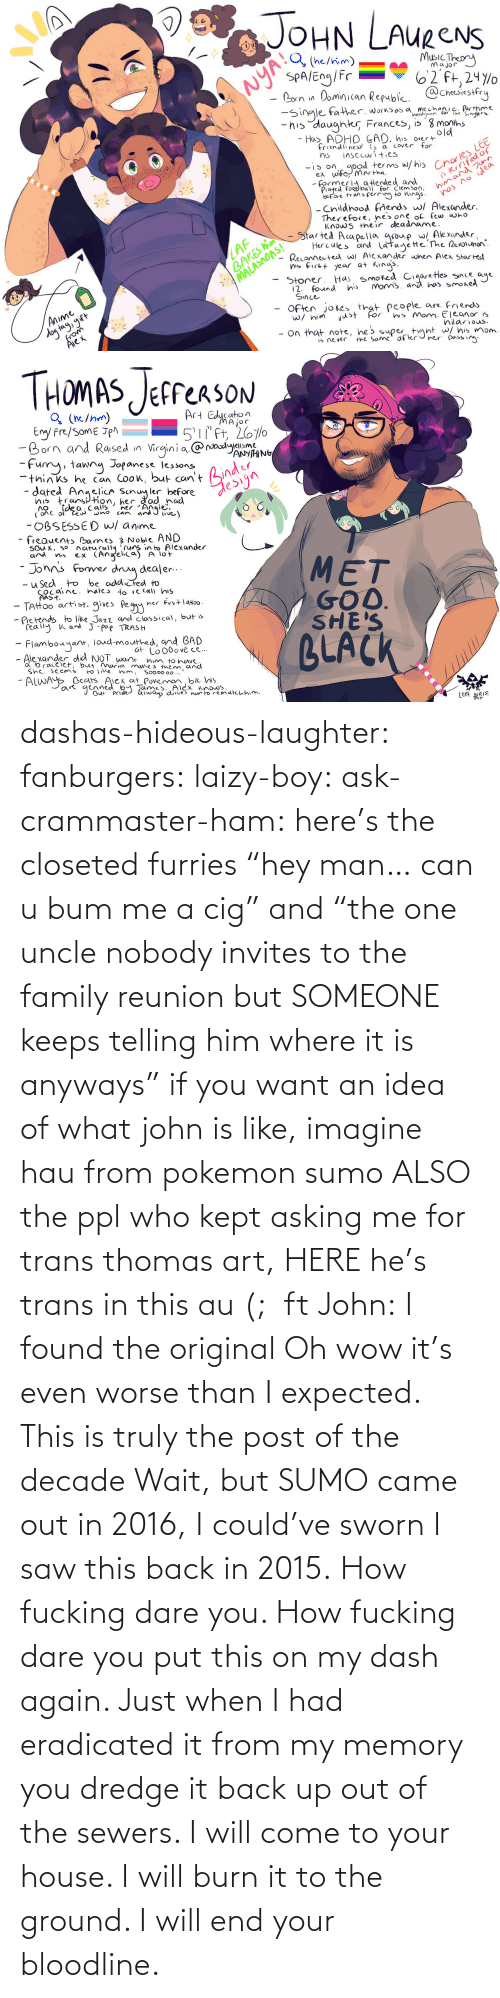 "just: dashas-hideous-laughter:  fanburgers:   laizy-boy:   ask-crammaster-ham:   here's the closeted furries ""hey man… can u bum me a cig"" and ""the one uncle nobody invites to the family reunion but SOMEONE keeps telling him where it is anyways""   if you want an idea of what john is like, imagine hau from pokemon sumo ALSO the ppl who kept asking me for trans thomas art, HERE he's trans in this au (;  ft John:    I found the original     Oh wow it's even worse than I expected. This is truly the post of the decade    Wait, but SUMO came out in 2016, I could've sworn I saw this back in 2015.    How fucking dare you. How fucking dare you put this on my dash again. Just when I had eradicated it from my memory you dredge it back up out of the sewers. I will come to your house. I will burn it to the ground. I will end your bloodline."